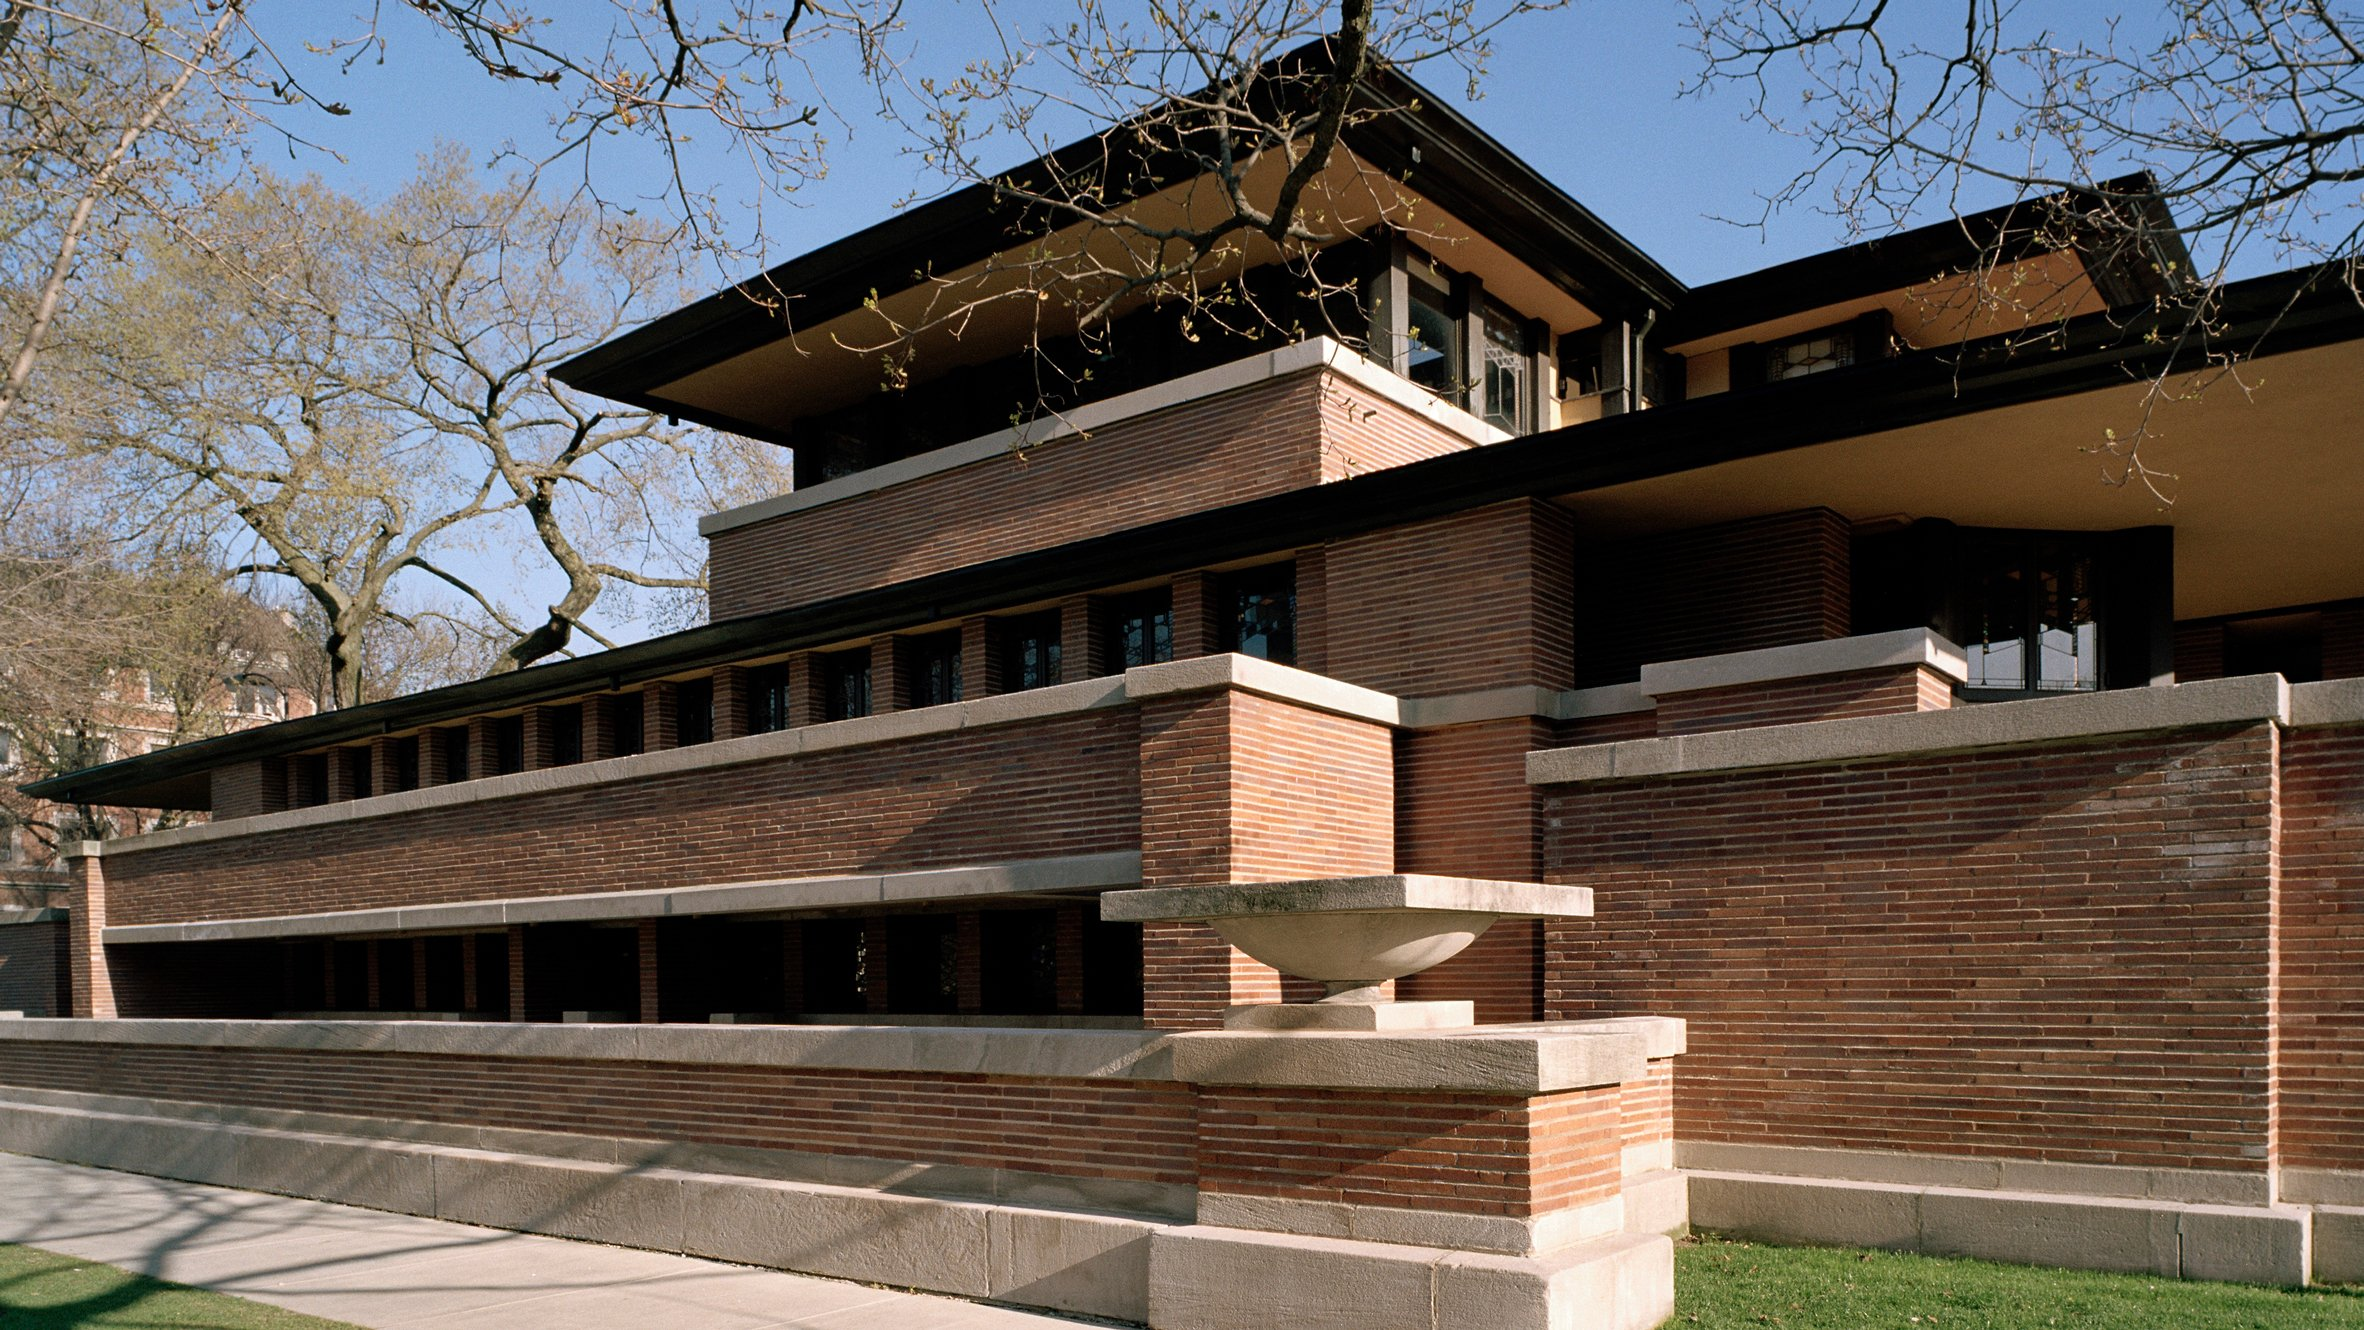 robie-house-illinois-frank-lloyd-wright - exterior